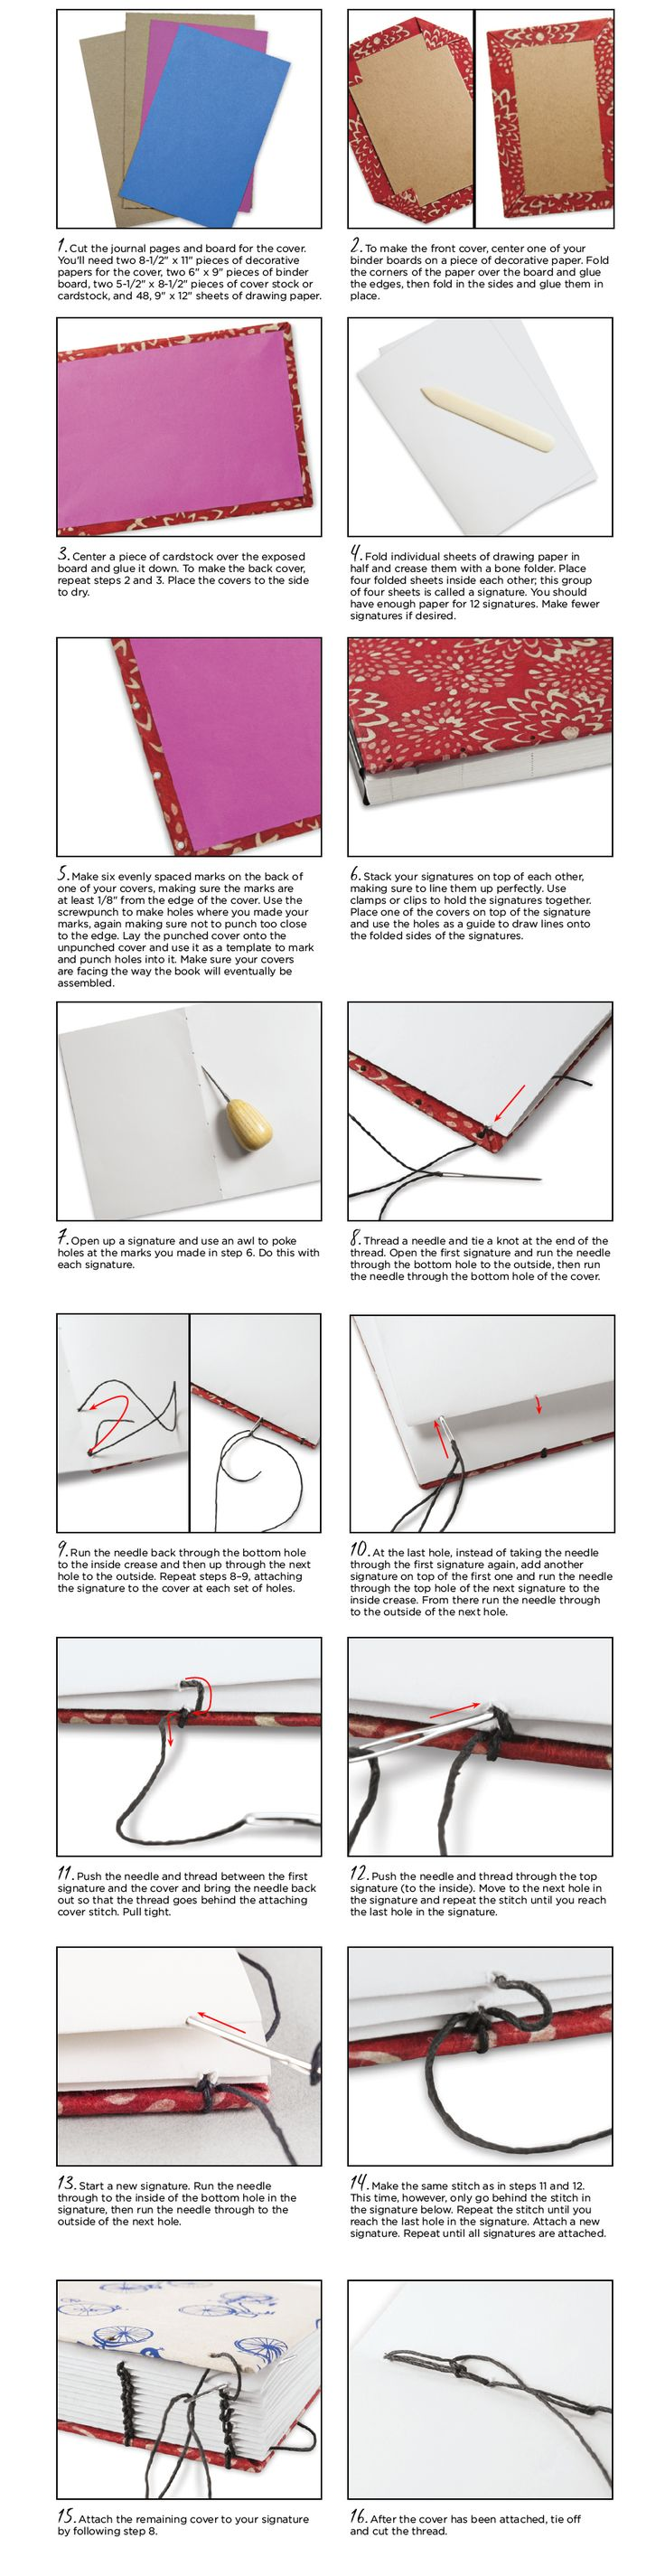 Coptic Stitch Bookmaking Steps